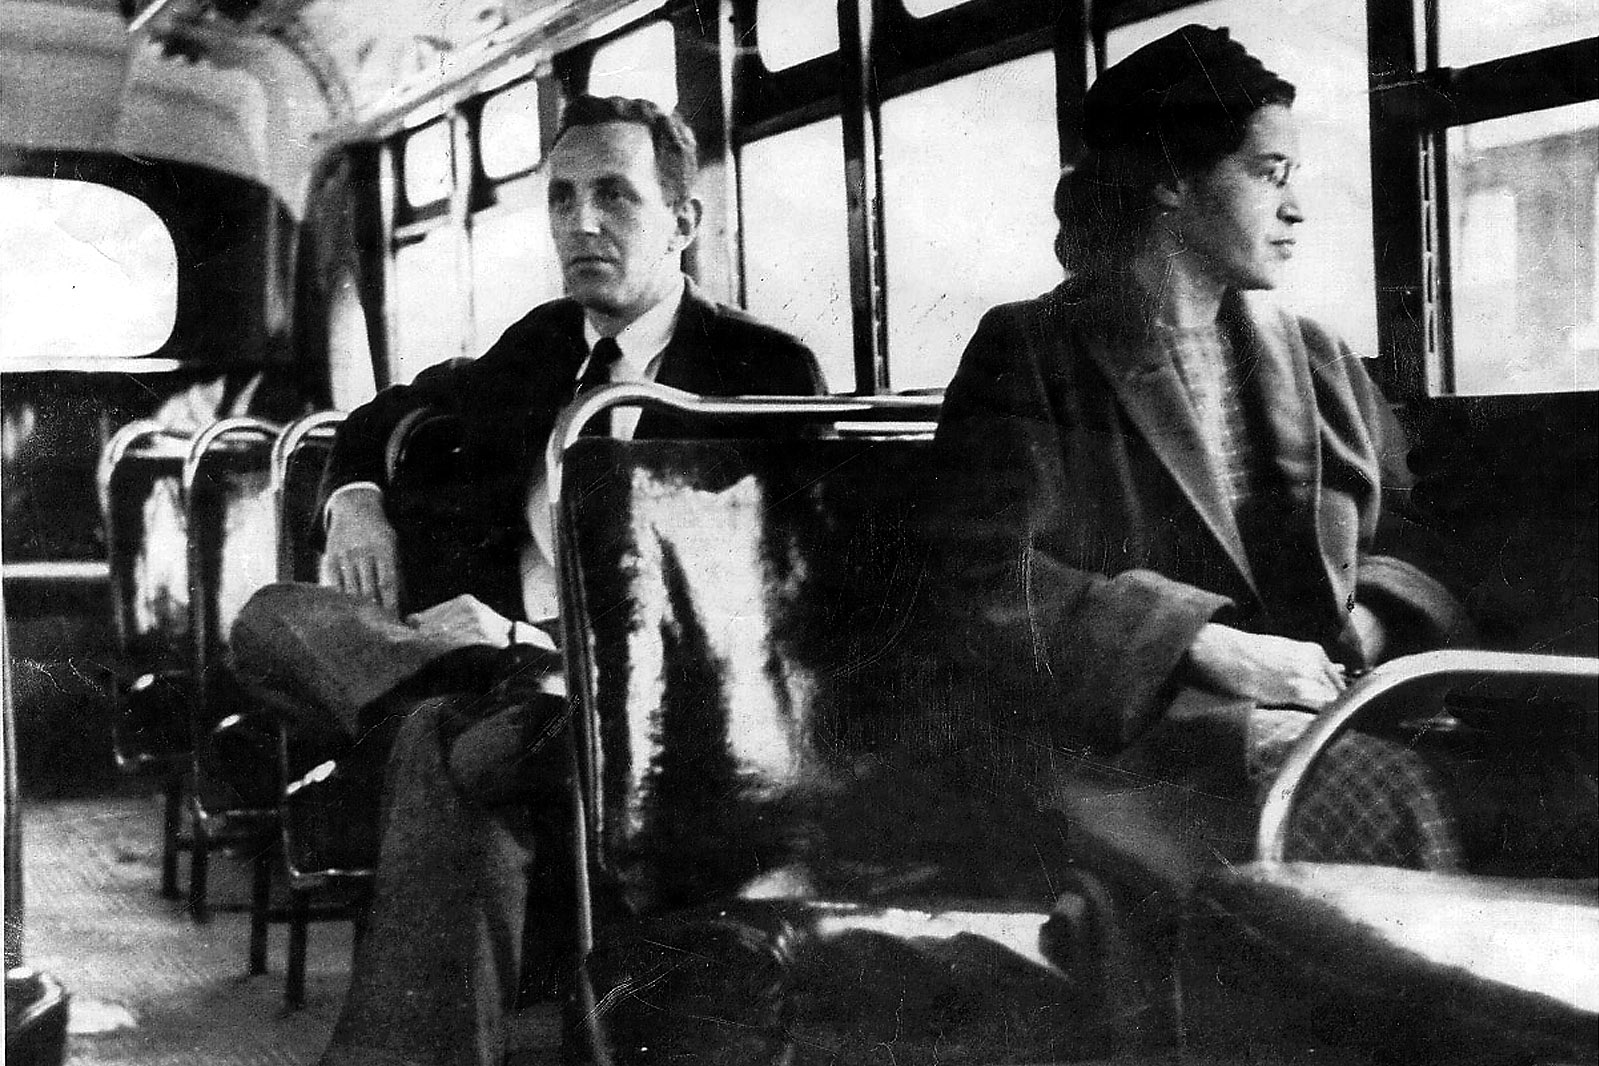 This an undated photo shows Rosa Parks riding on the Montgomery Area Transit System bus. Parks refused to give up her seat on a Montgomery bus on Dec. 1, 1955, and ignited the boycott that led to a federal court ruling against segregation in public transportation. In 1955, Montgomery's racially segregated buses carried 30,000 to 40,000 blacks each day. At a time when interest in civil rights memorabilia is rekindled, a lifetime's worth of Parks' belongings _ among them her Presidential Medal of Freedom _ sits in a New York warehouse, unseen and unsold. (AP Photo/Daily Advertiser)